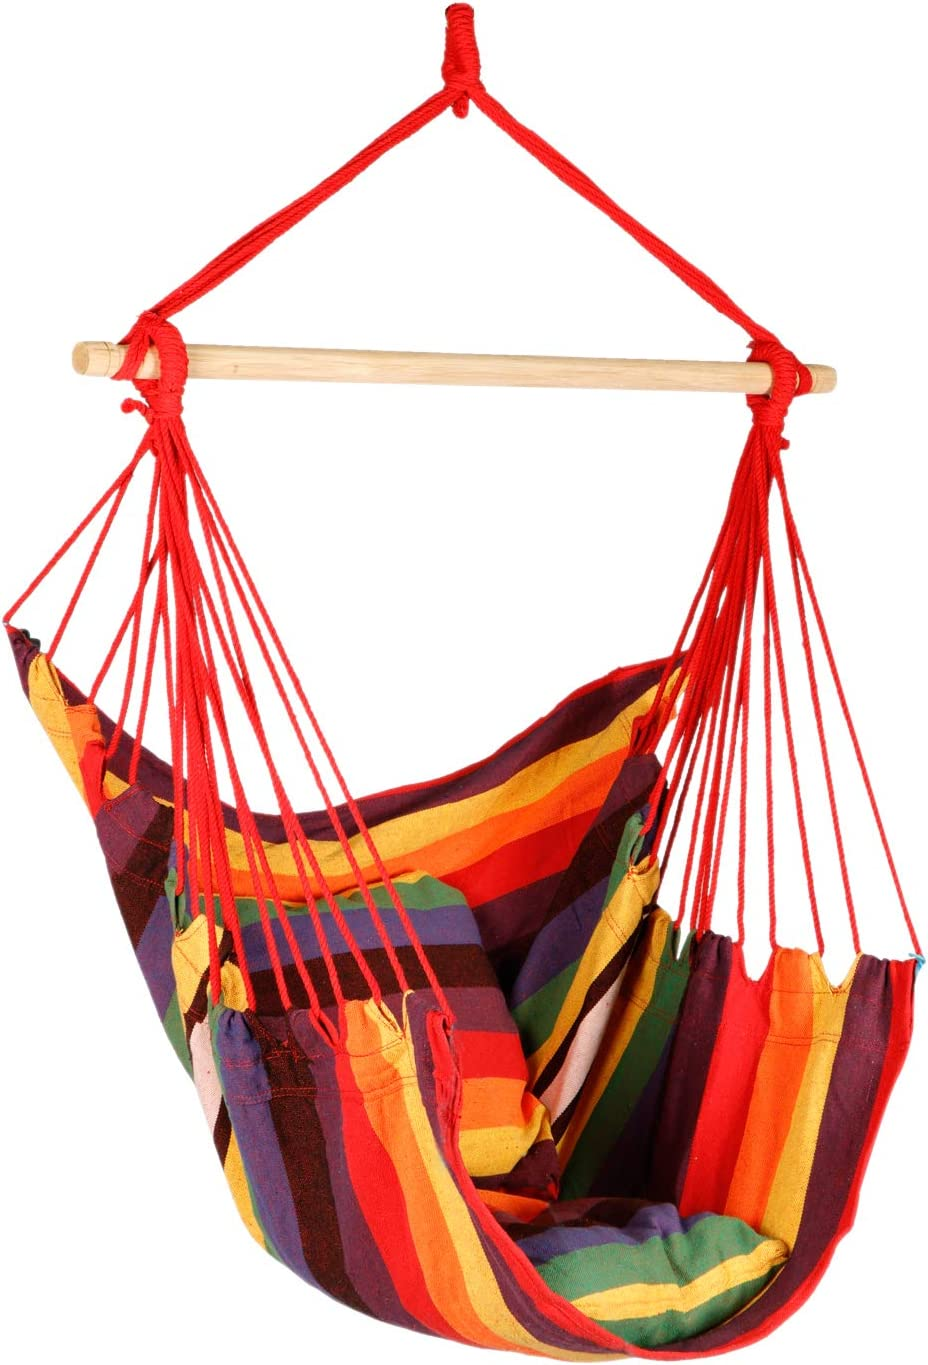 Bathonly Hanging Rope Hammock Chair, Hanging Rope Chair Swings, 2 Seat Cushions Included, Max.265 Lb